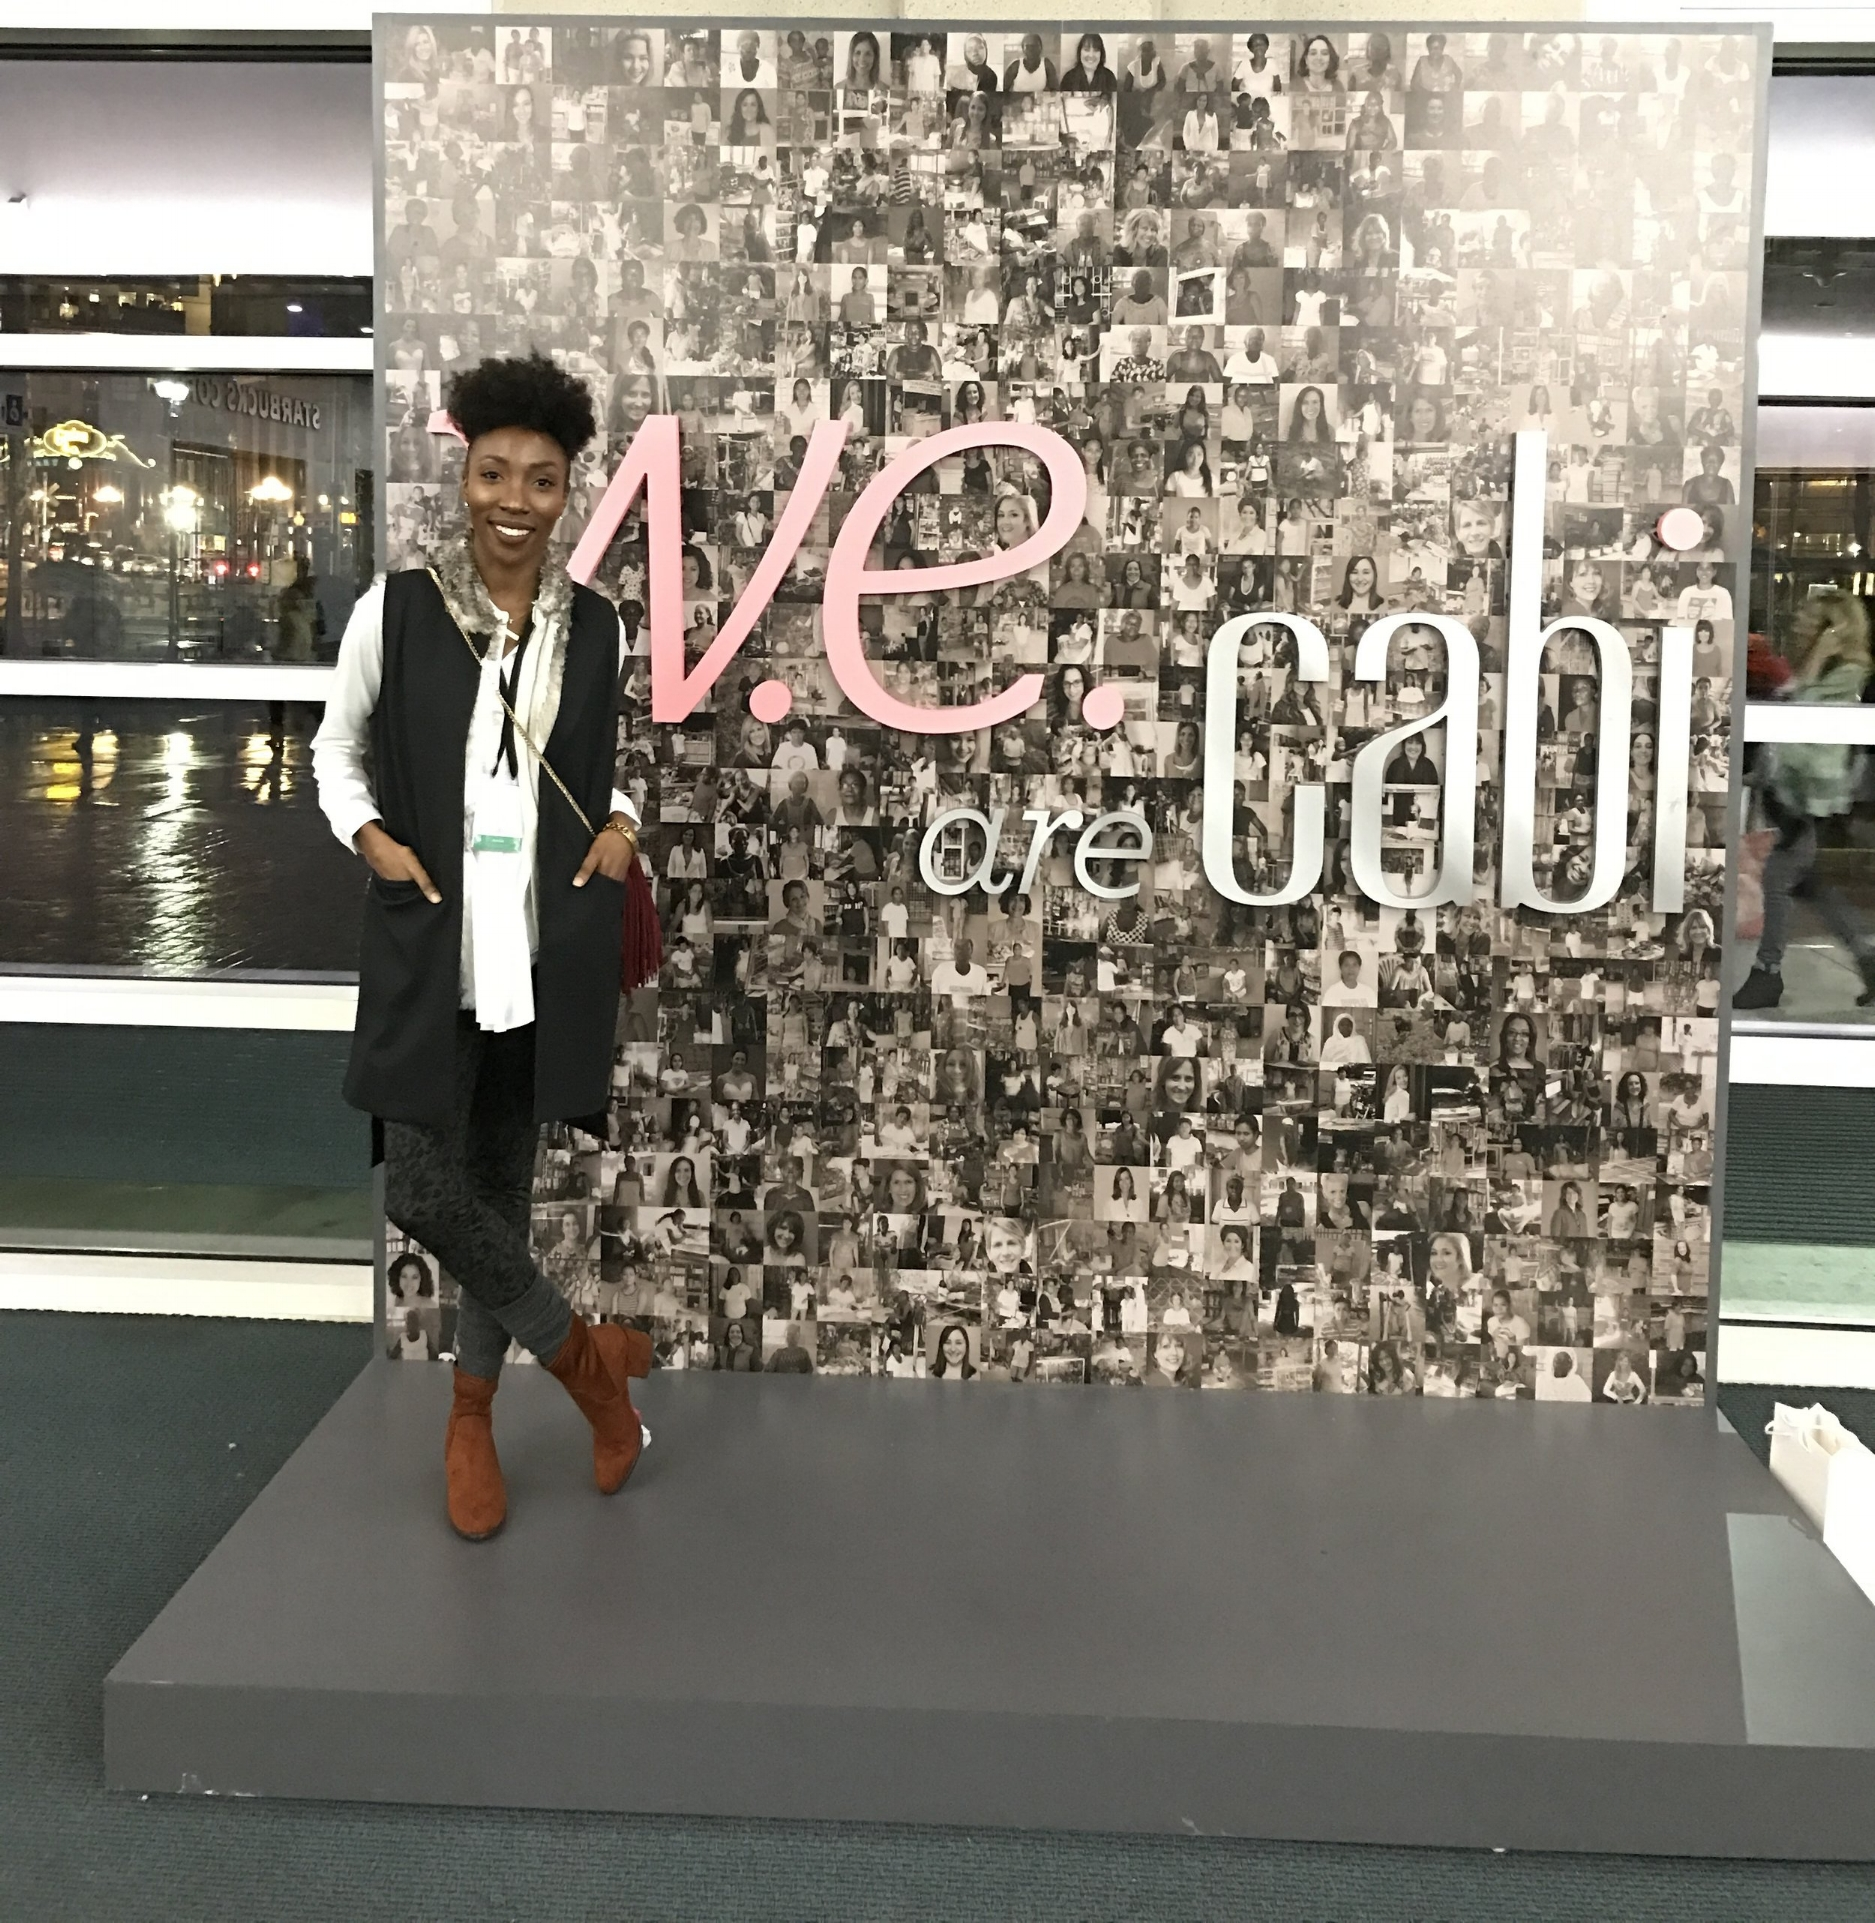 After the show... My self and the other bloggers took photos, did a little shopping and went to dinner! It was fun chatting and getting to know the other girls!!!  Check out my haul and see what I got from the  Cabi  shopping event  https://youtu.be/p4UZ56AkvIM